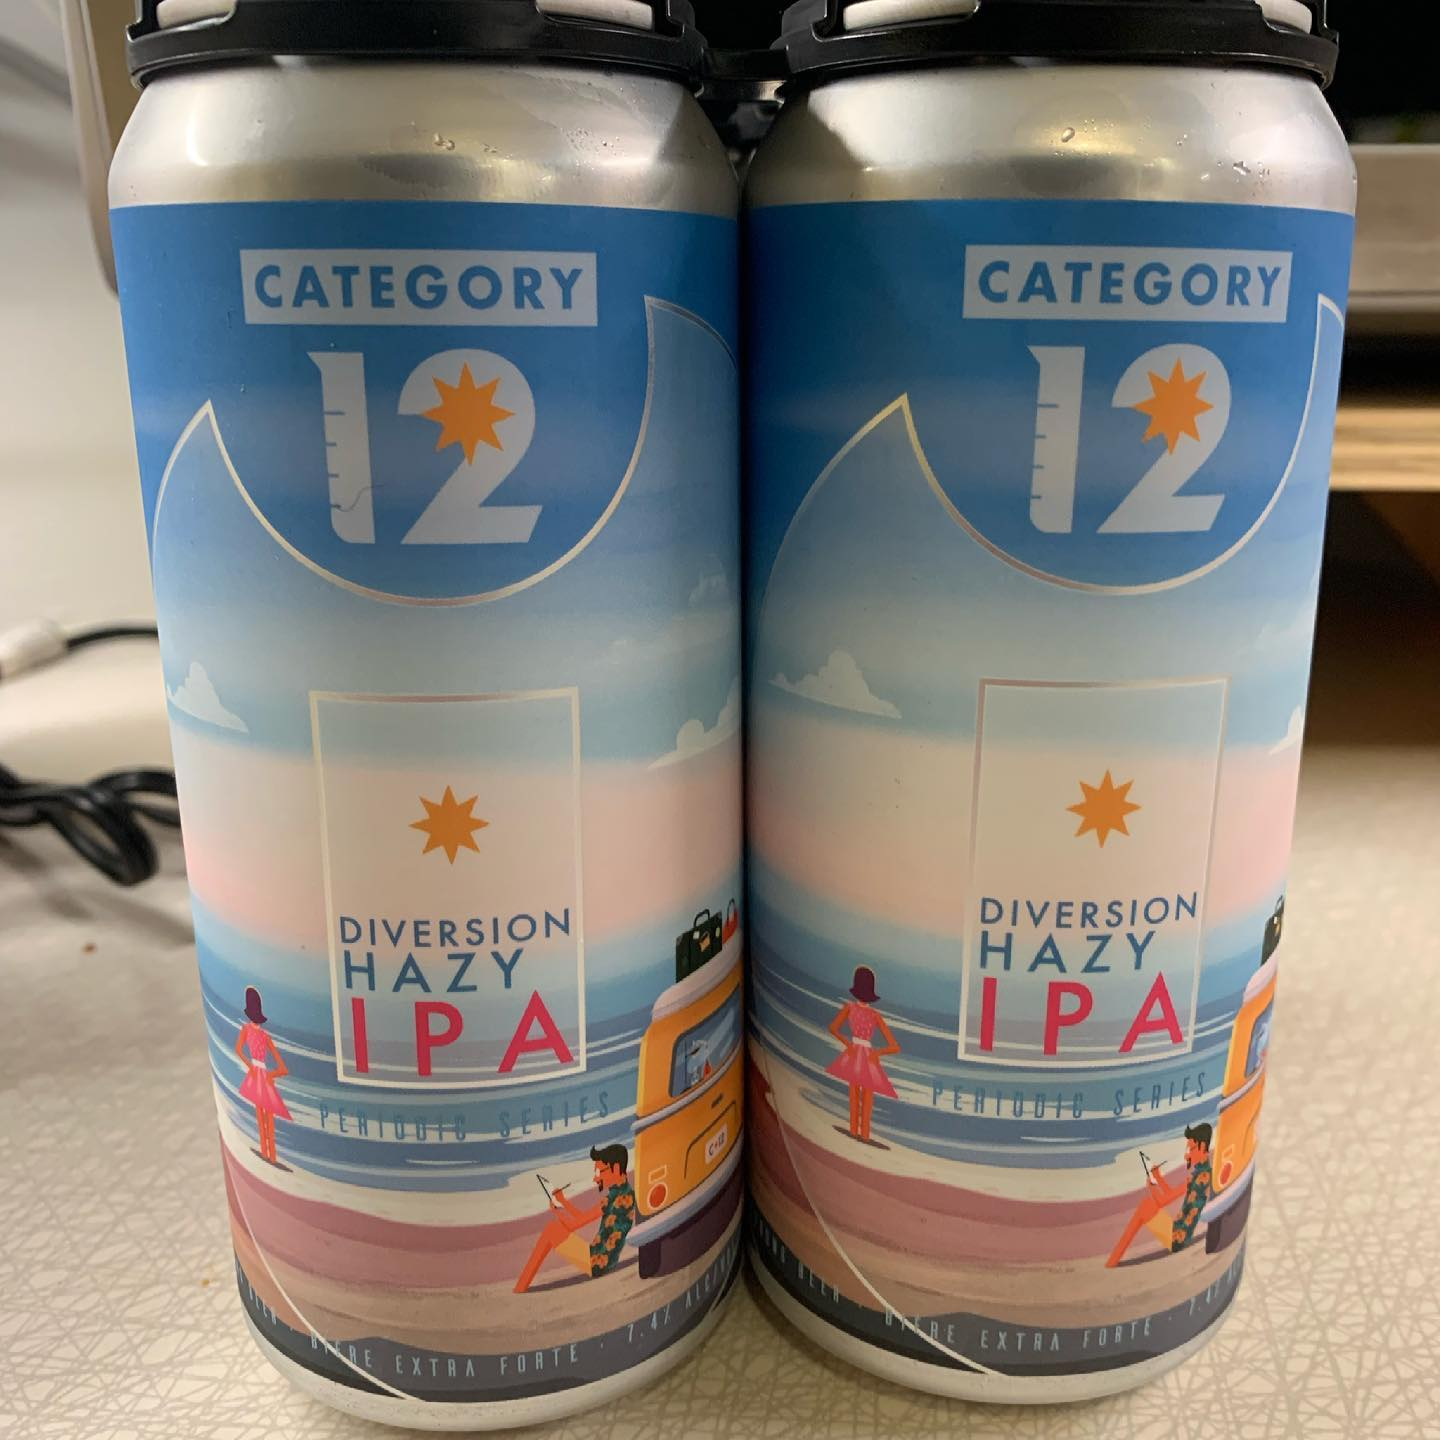 Looking forward to this @c12beer that I just got from @tudorhouseliquorstore #yyj #beer #yyjbeer #hazyipa